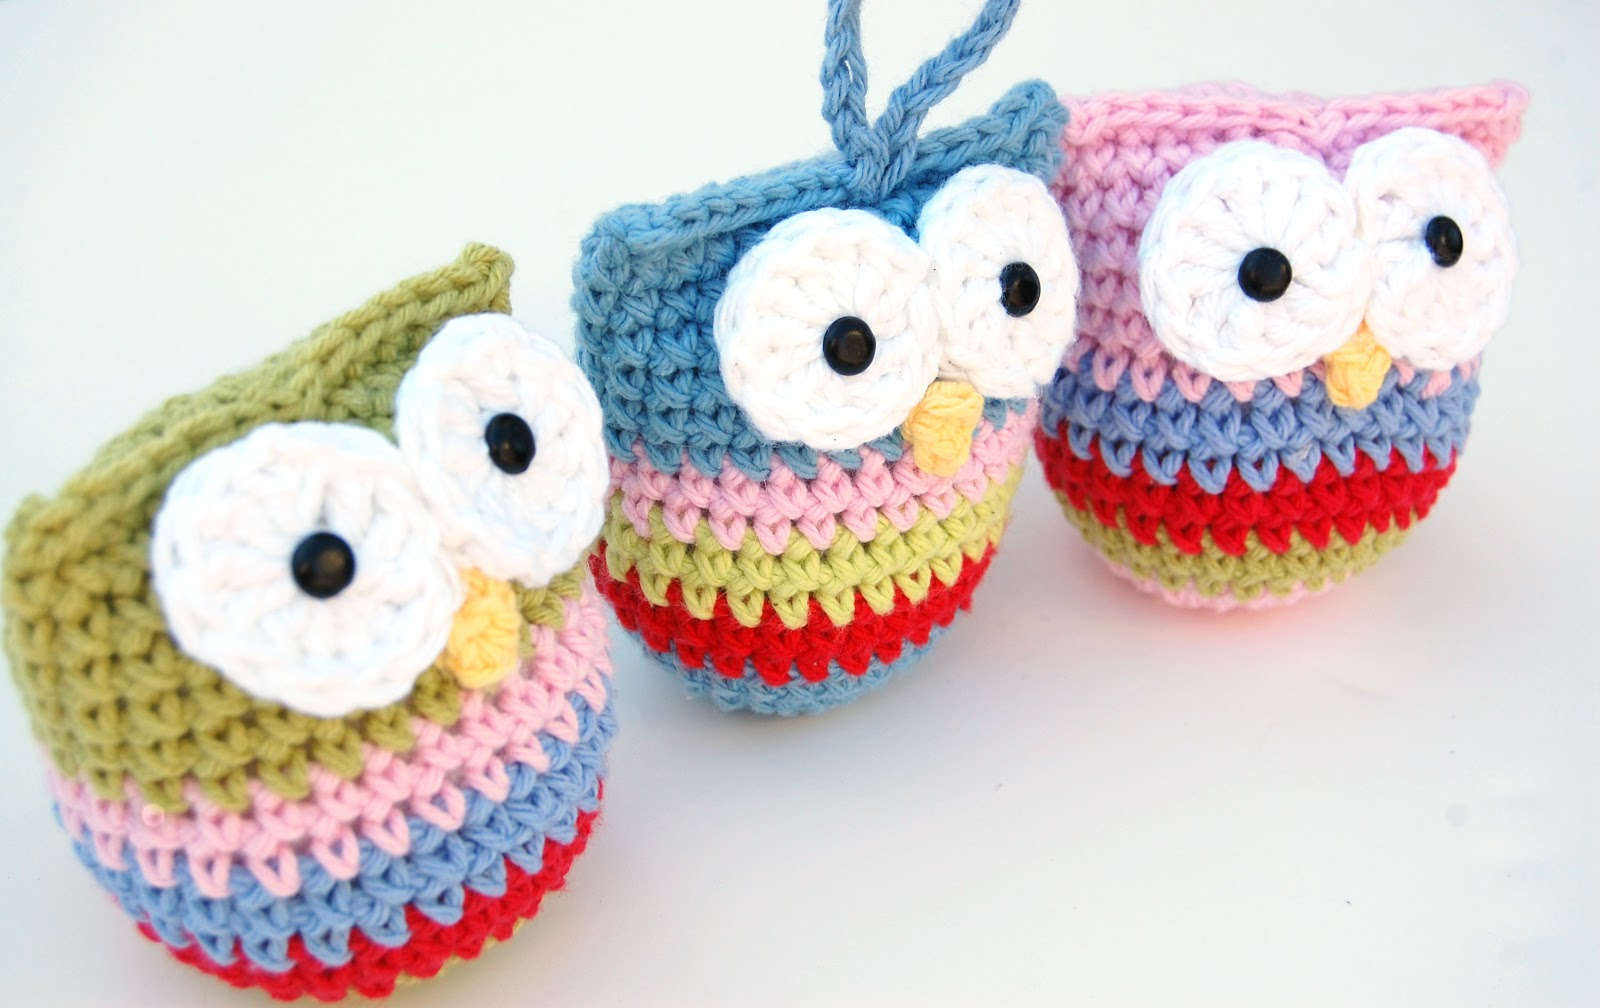 Crochet Tutorial Owl : Crochet Owl Ornament Pattern